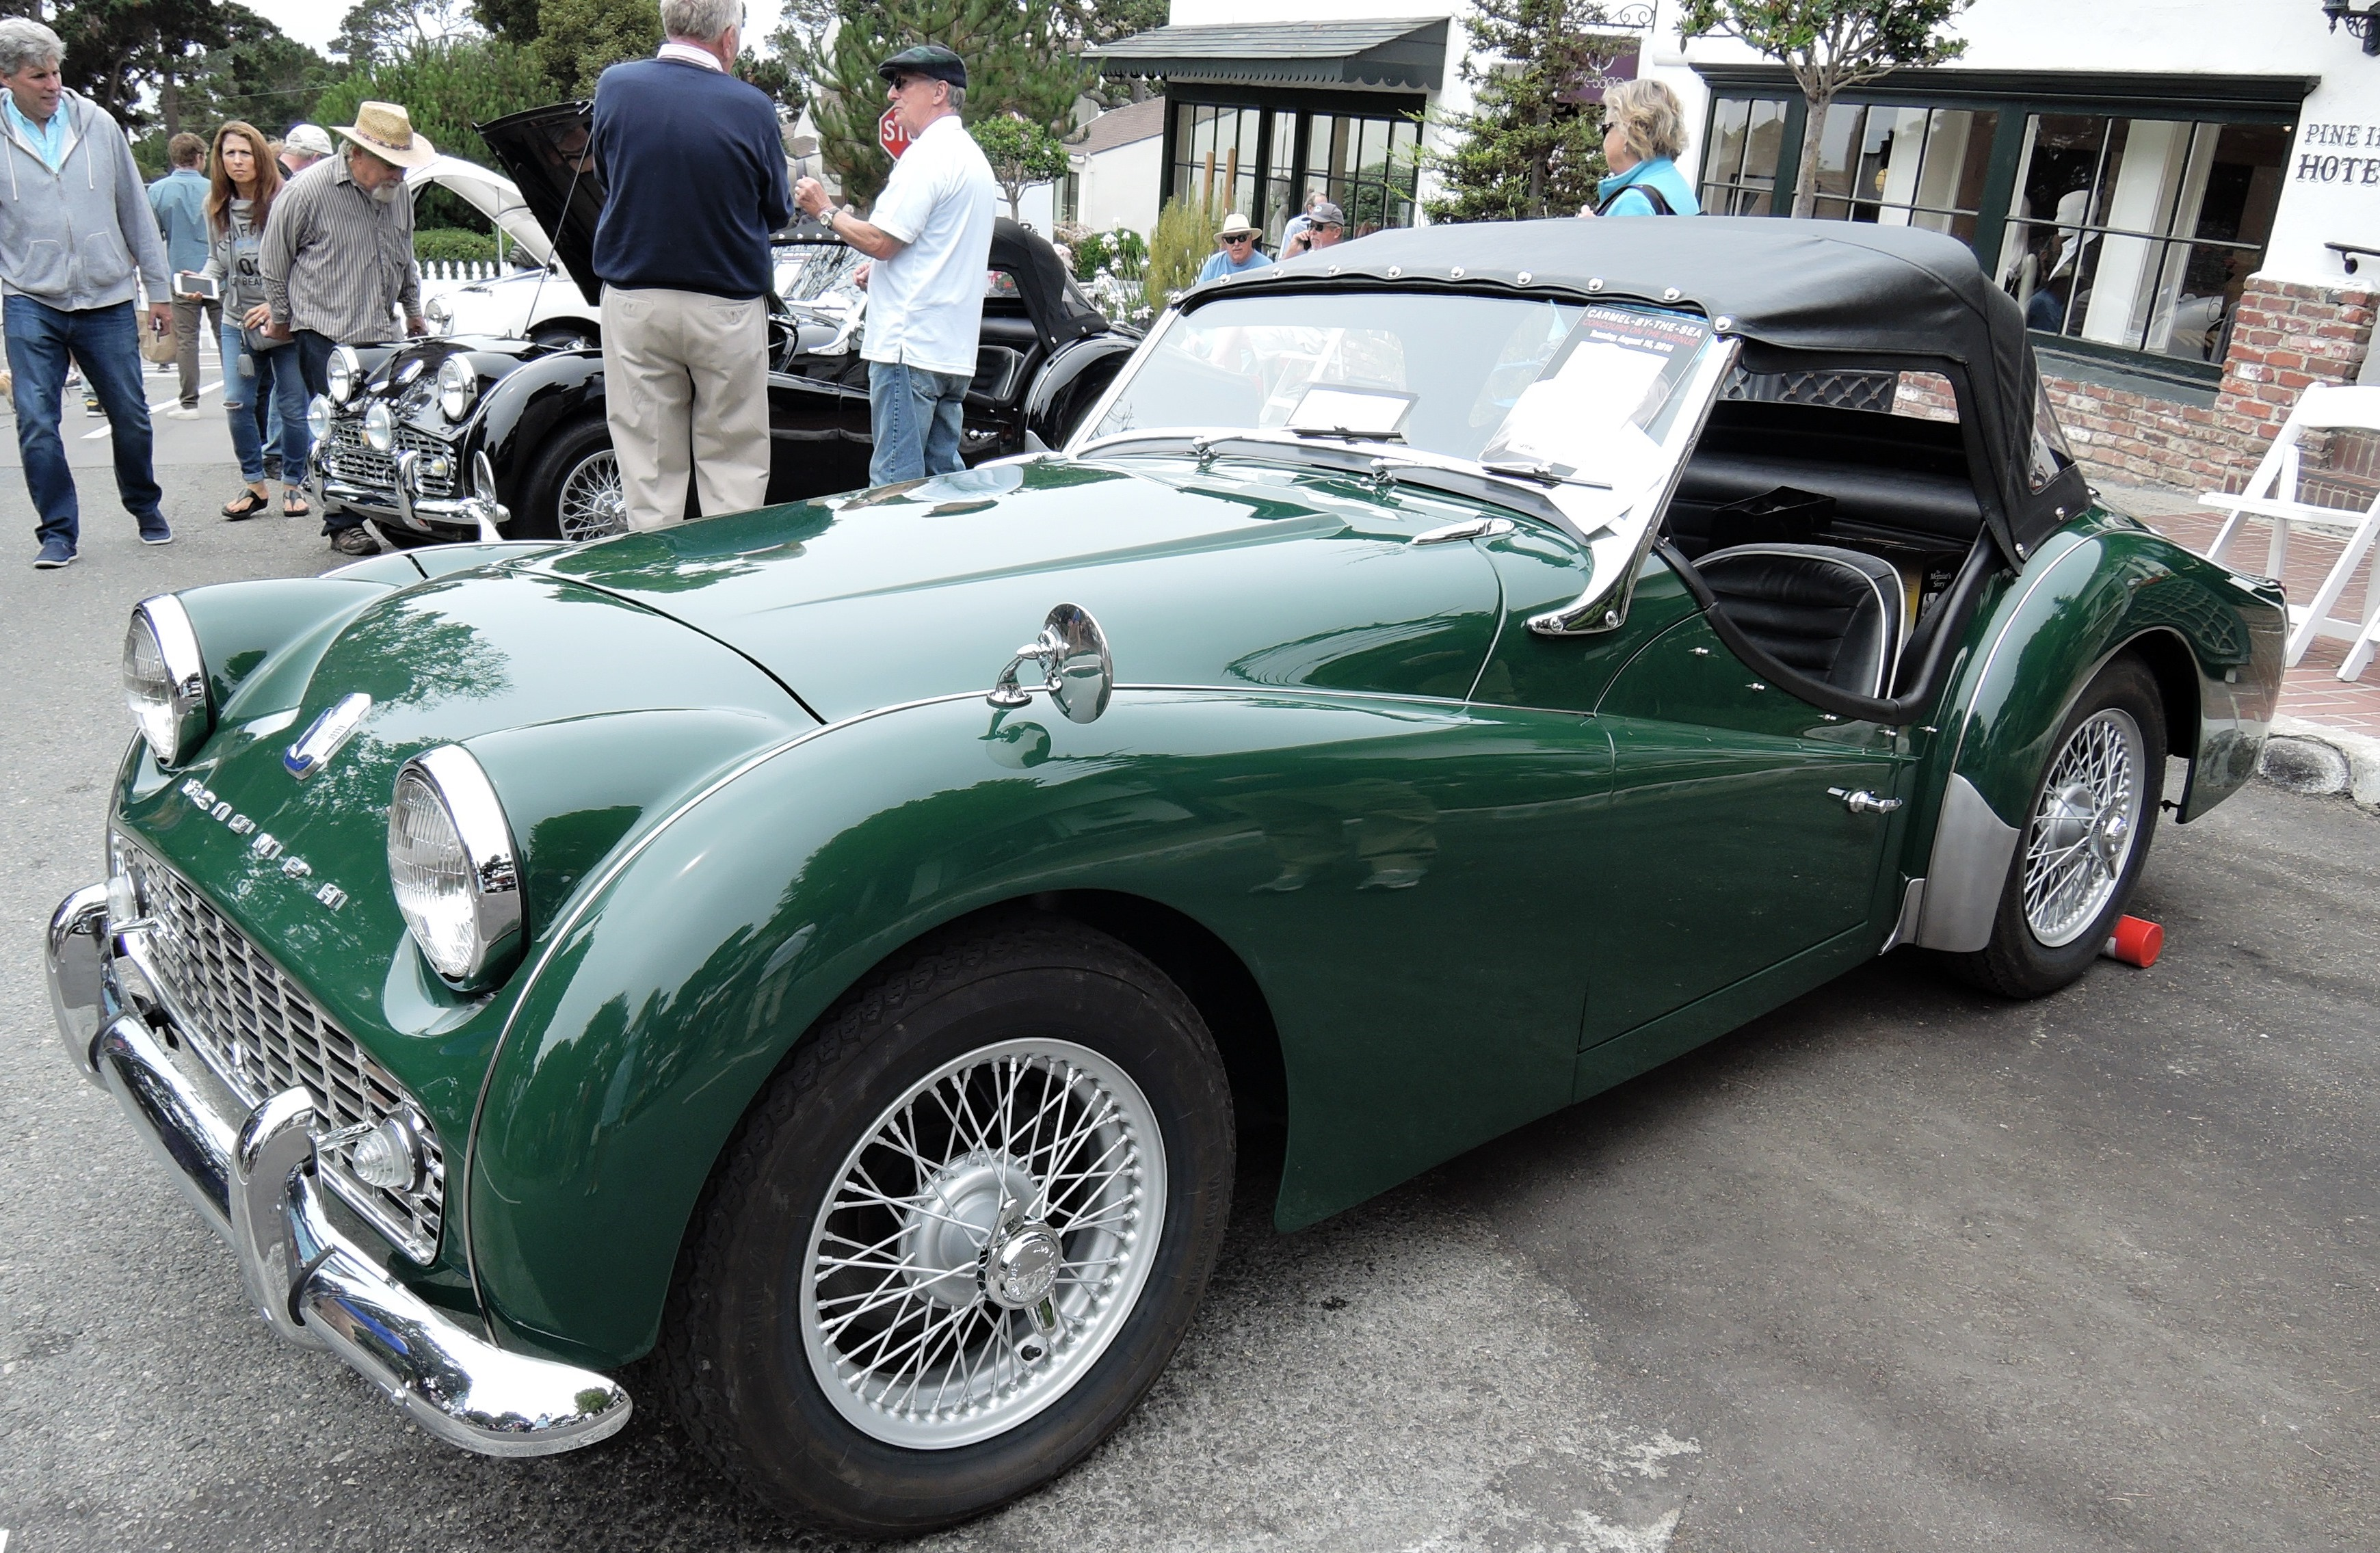 green 1962 Triumph TR3 - Concours on the Ave Carmel